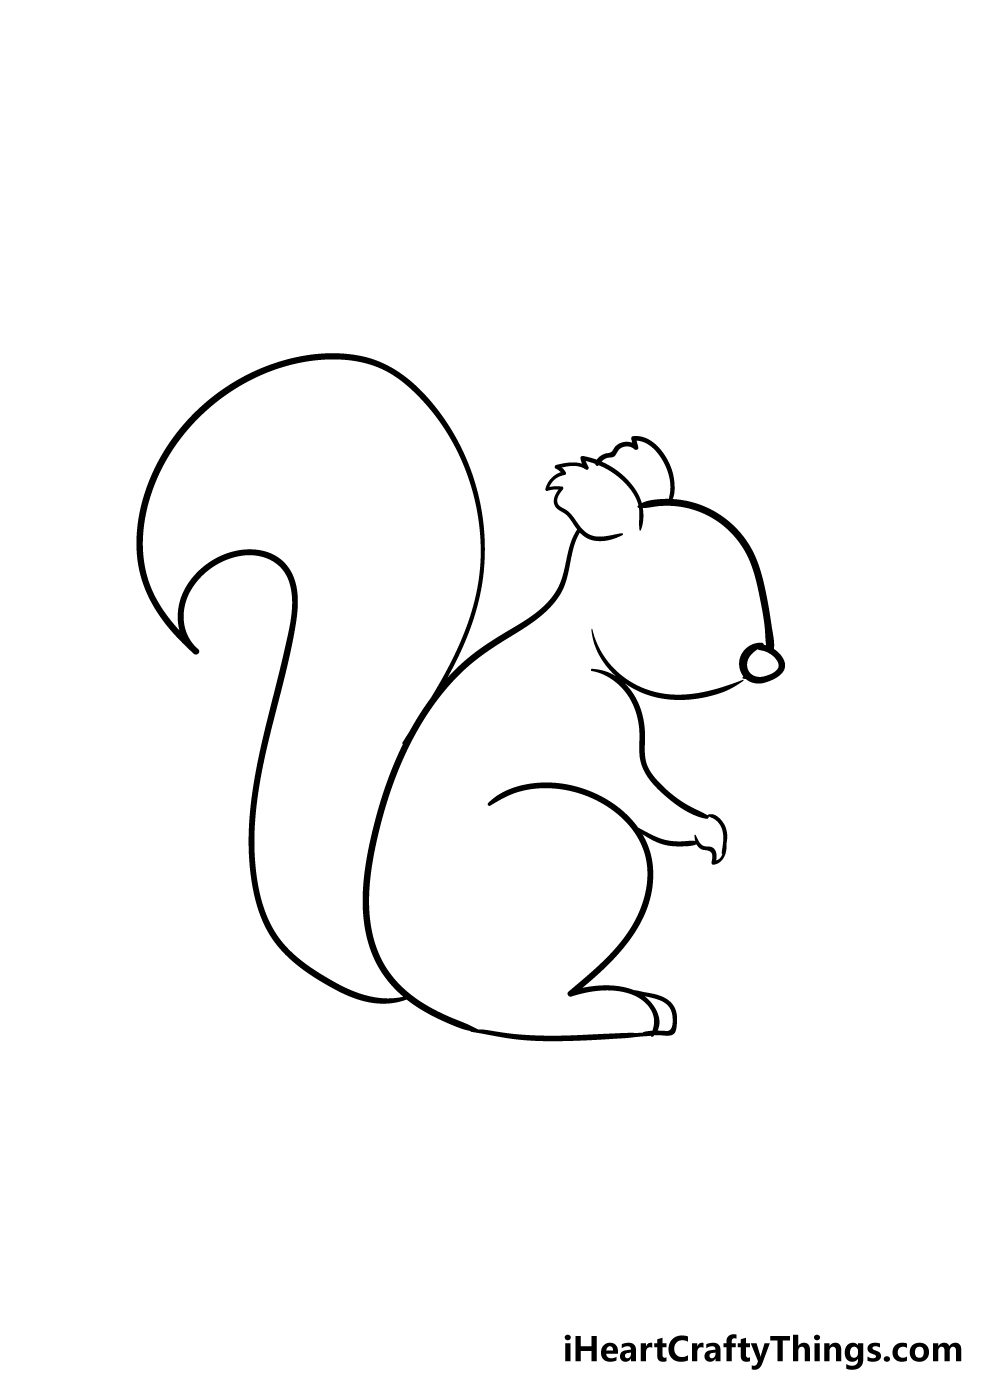 squirrel drawing step 3